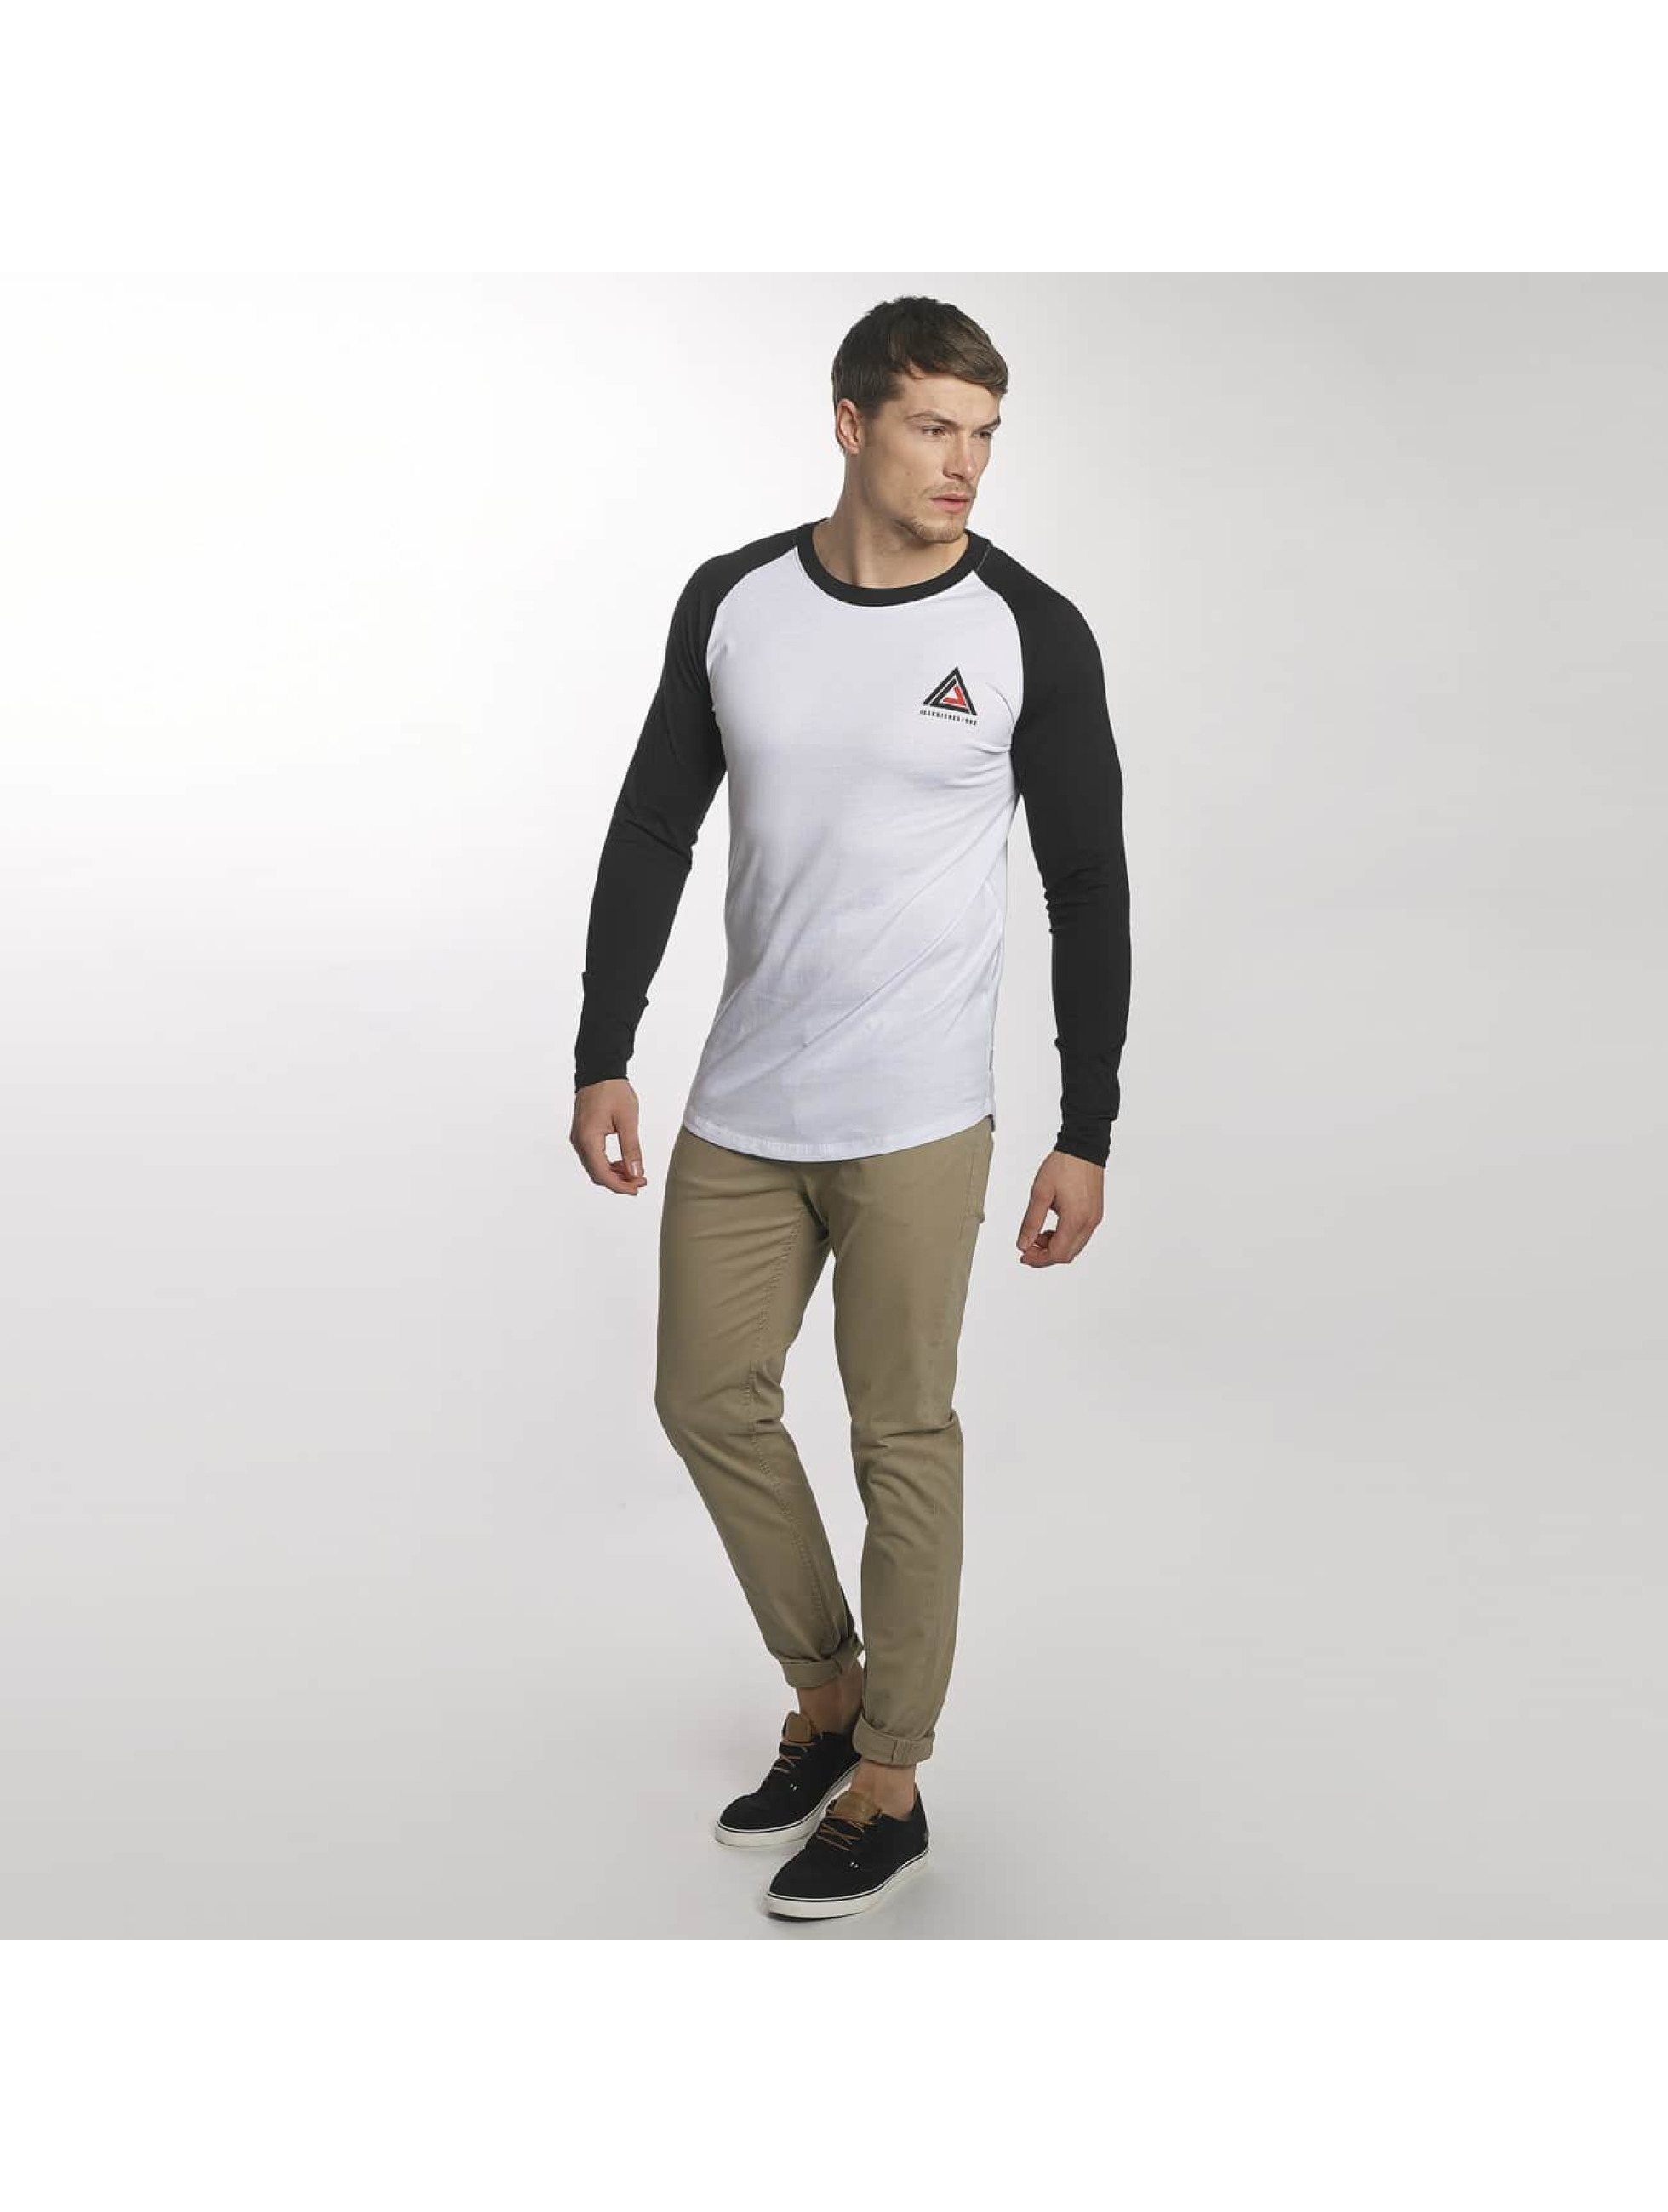 Jack & Jones Camiseta de manga larga jcoBuddy blanco